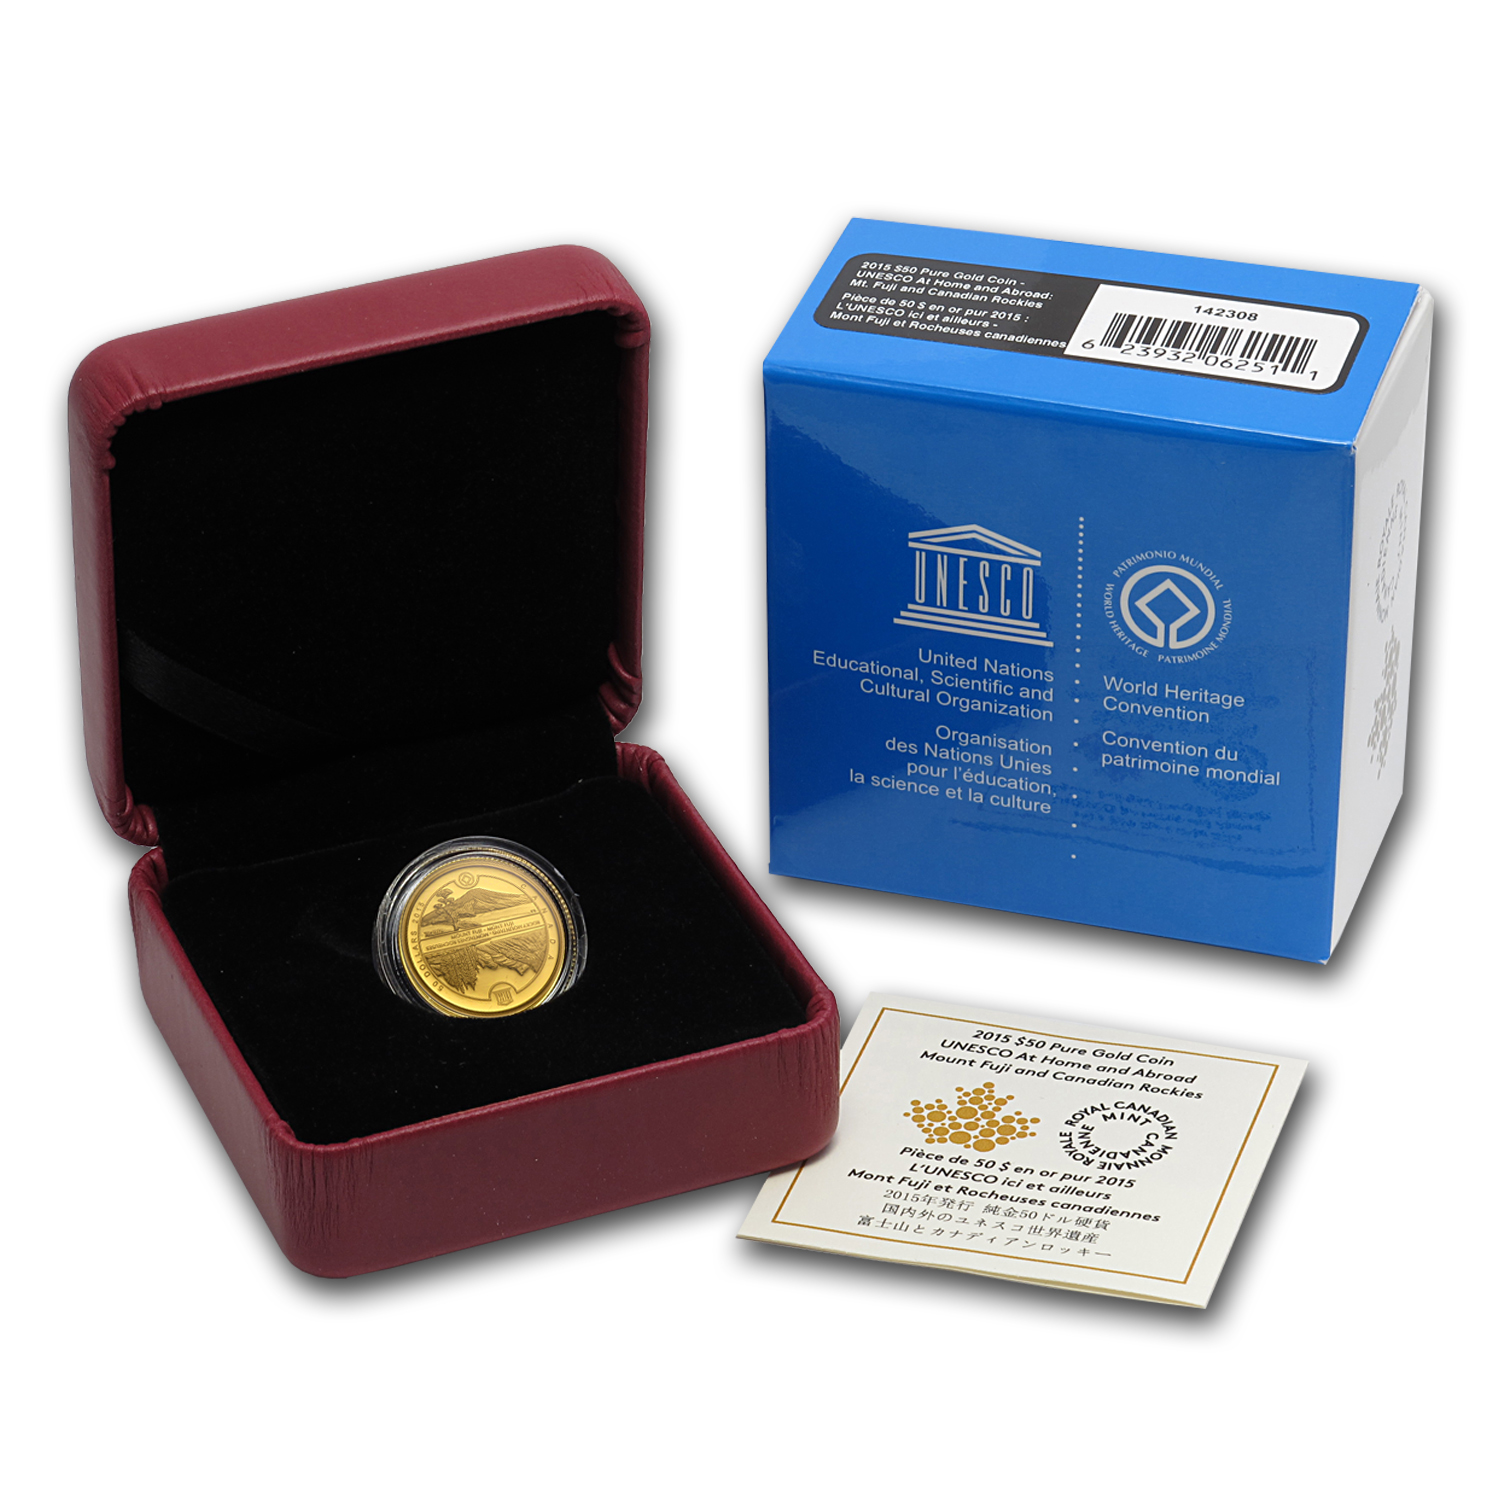 2015 Canada 1/4 oz Proof Gold $50 Unesco at Home & Abroad